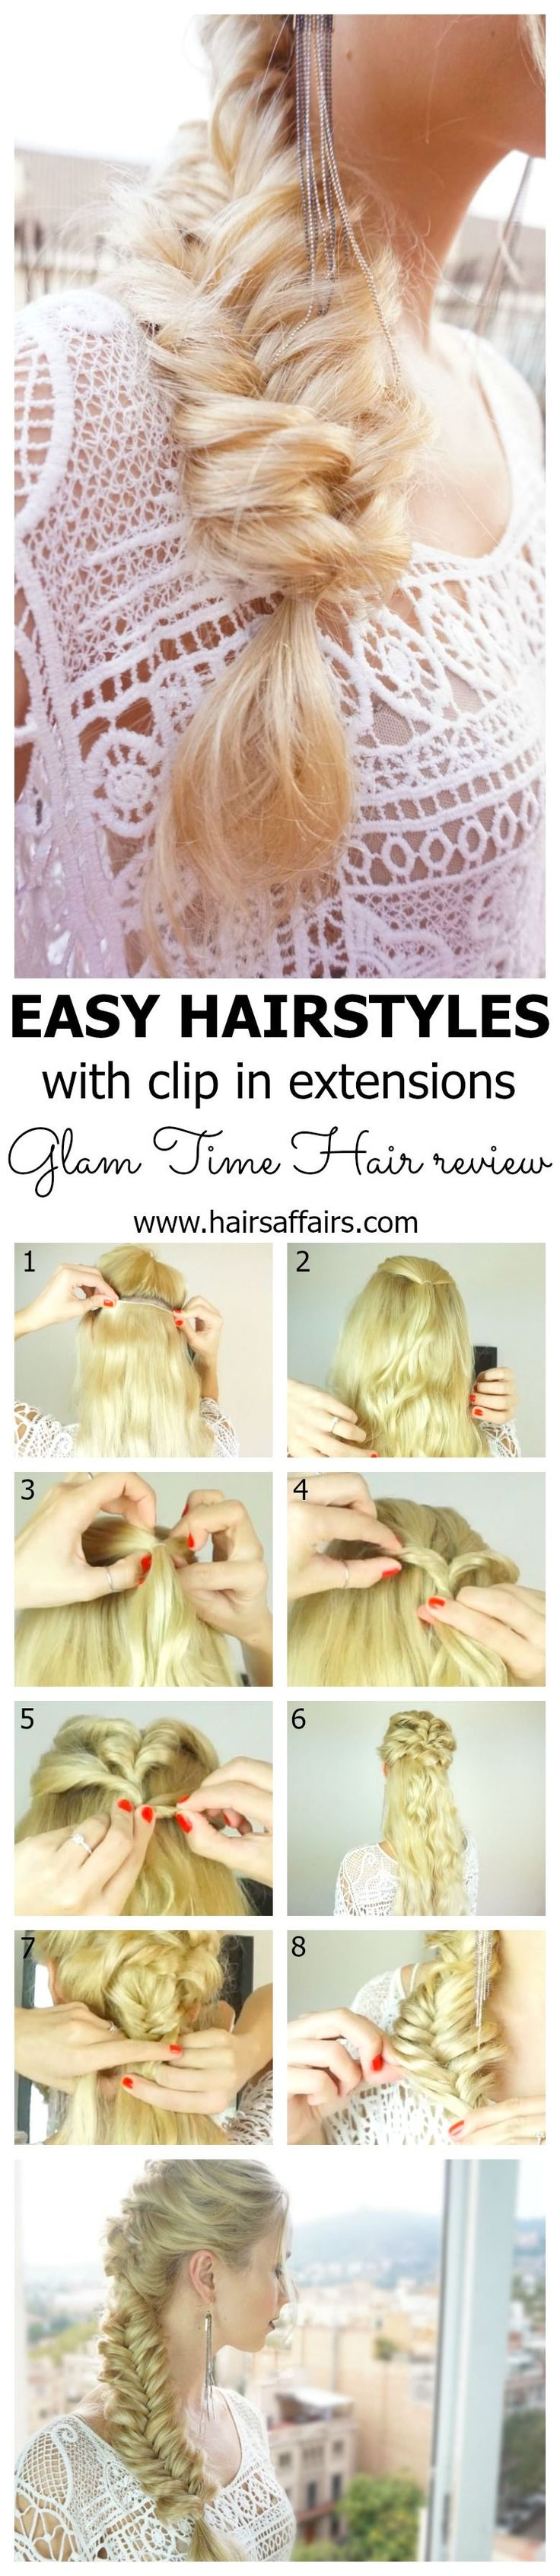 25 trending extension hairstyles ideas on pinterest hairstyles the option of instantly adding length and volume with clip in hair extensions to certain hairstyles or braids feels incredibly liberating pmusecretfo Choice Image